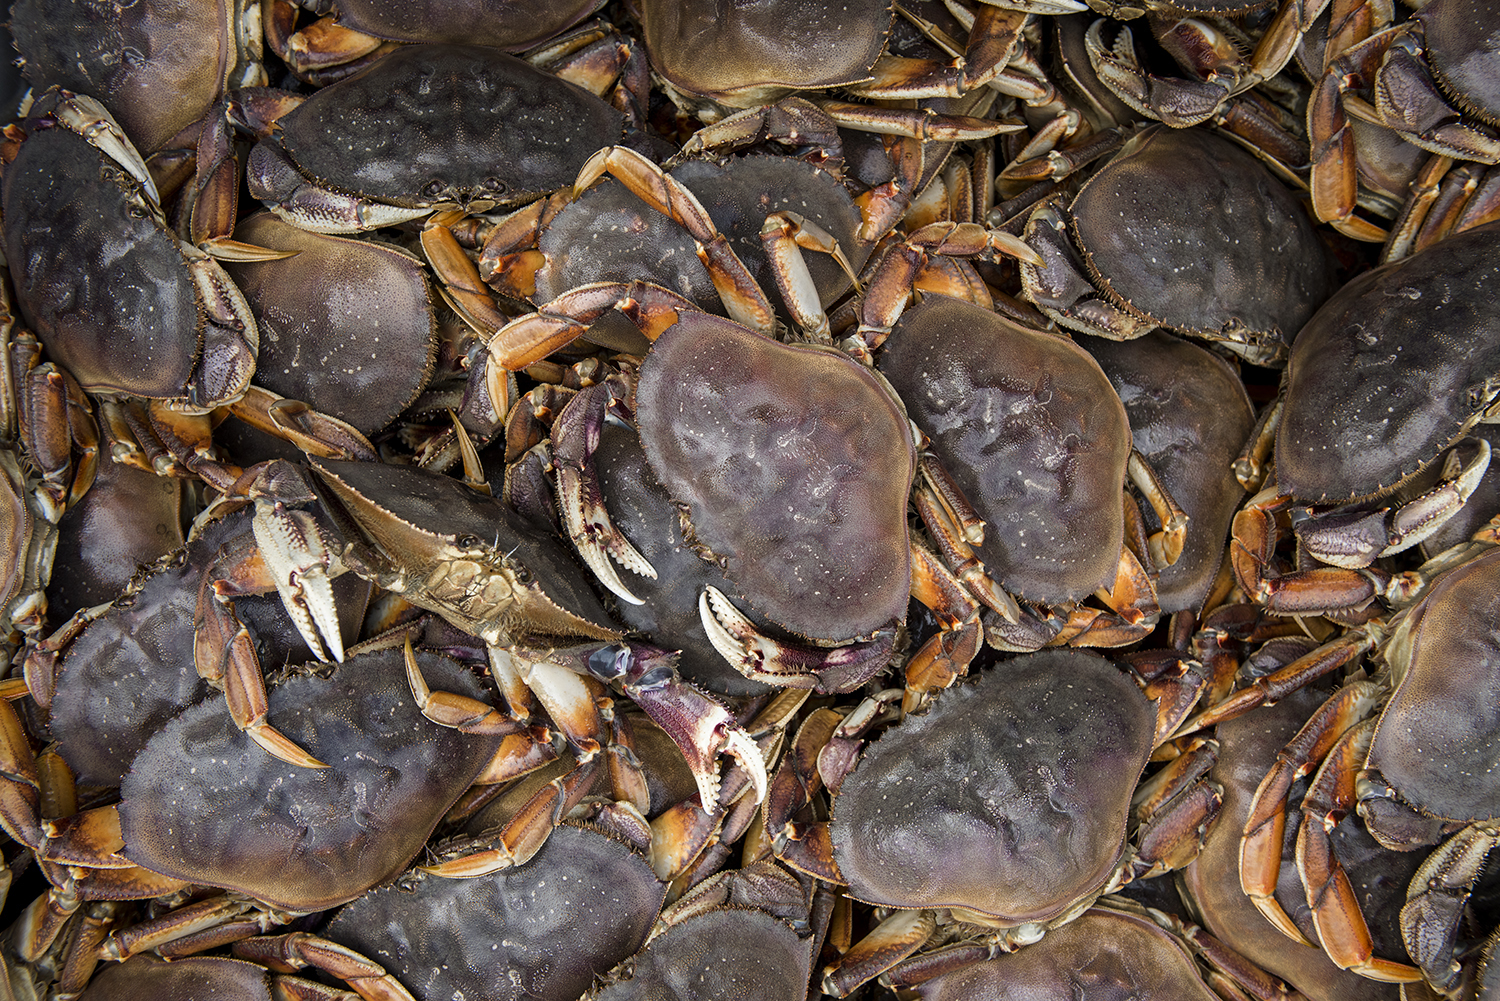 Ocean Acidification Communication Toolkit: Dungeness Crab